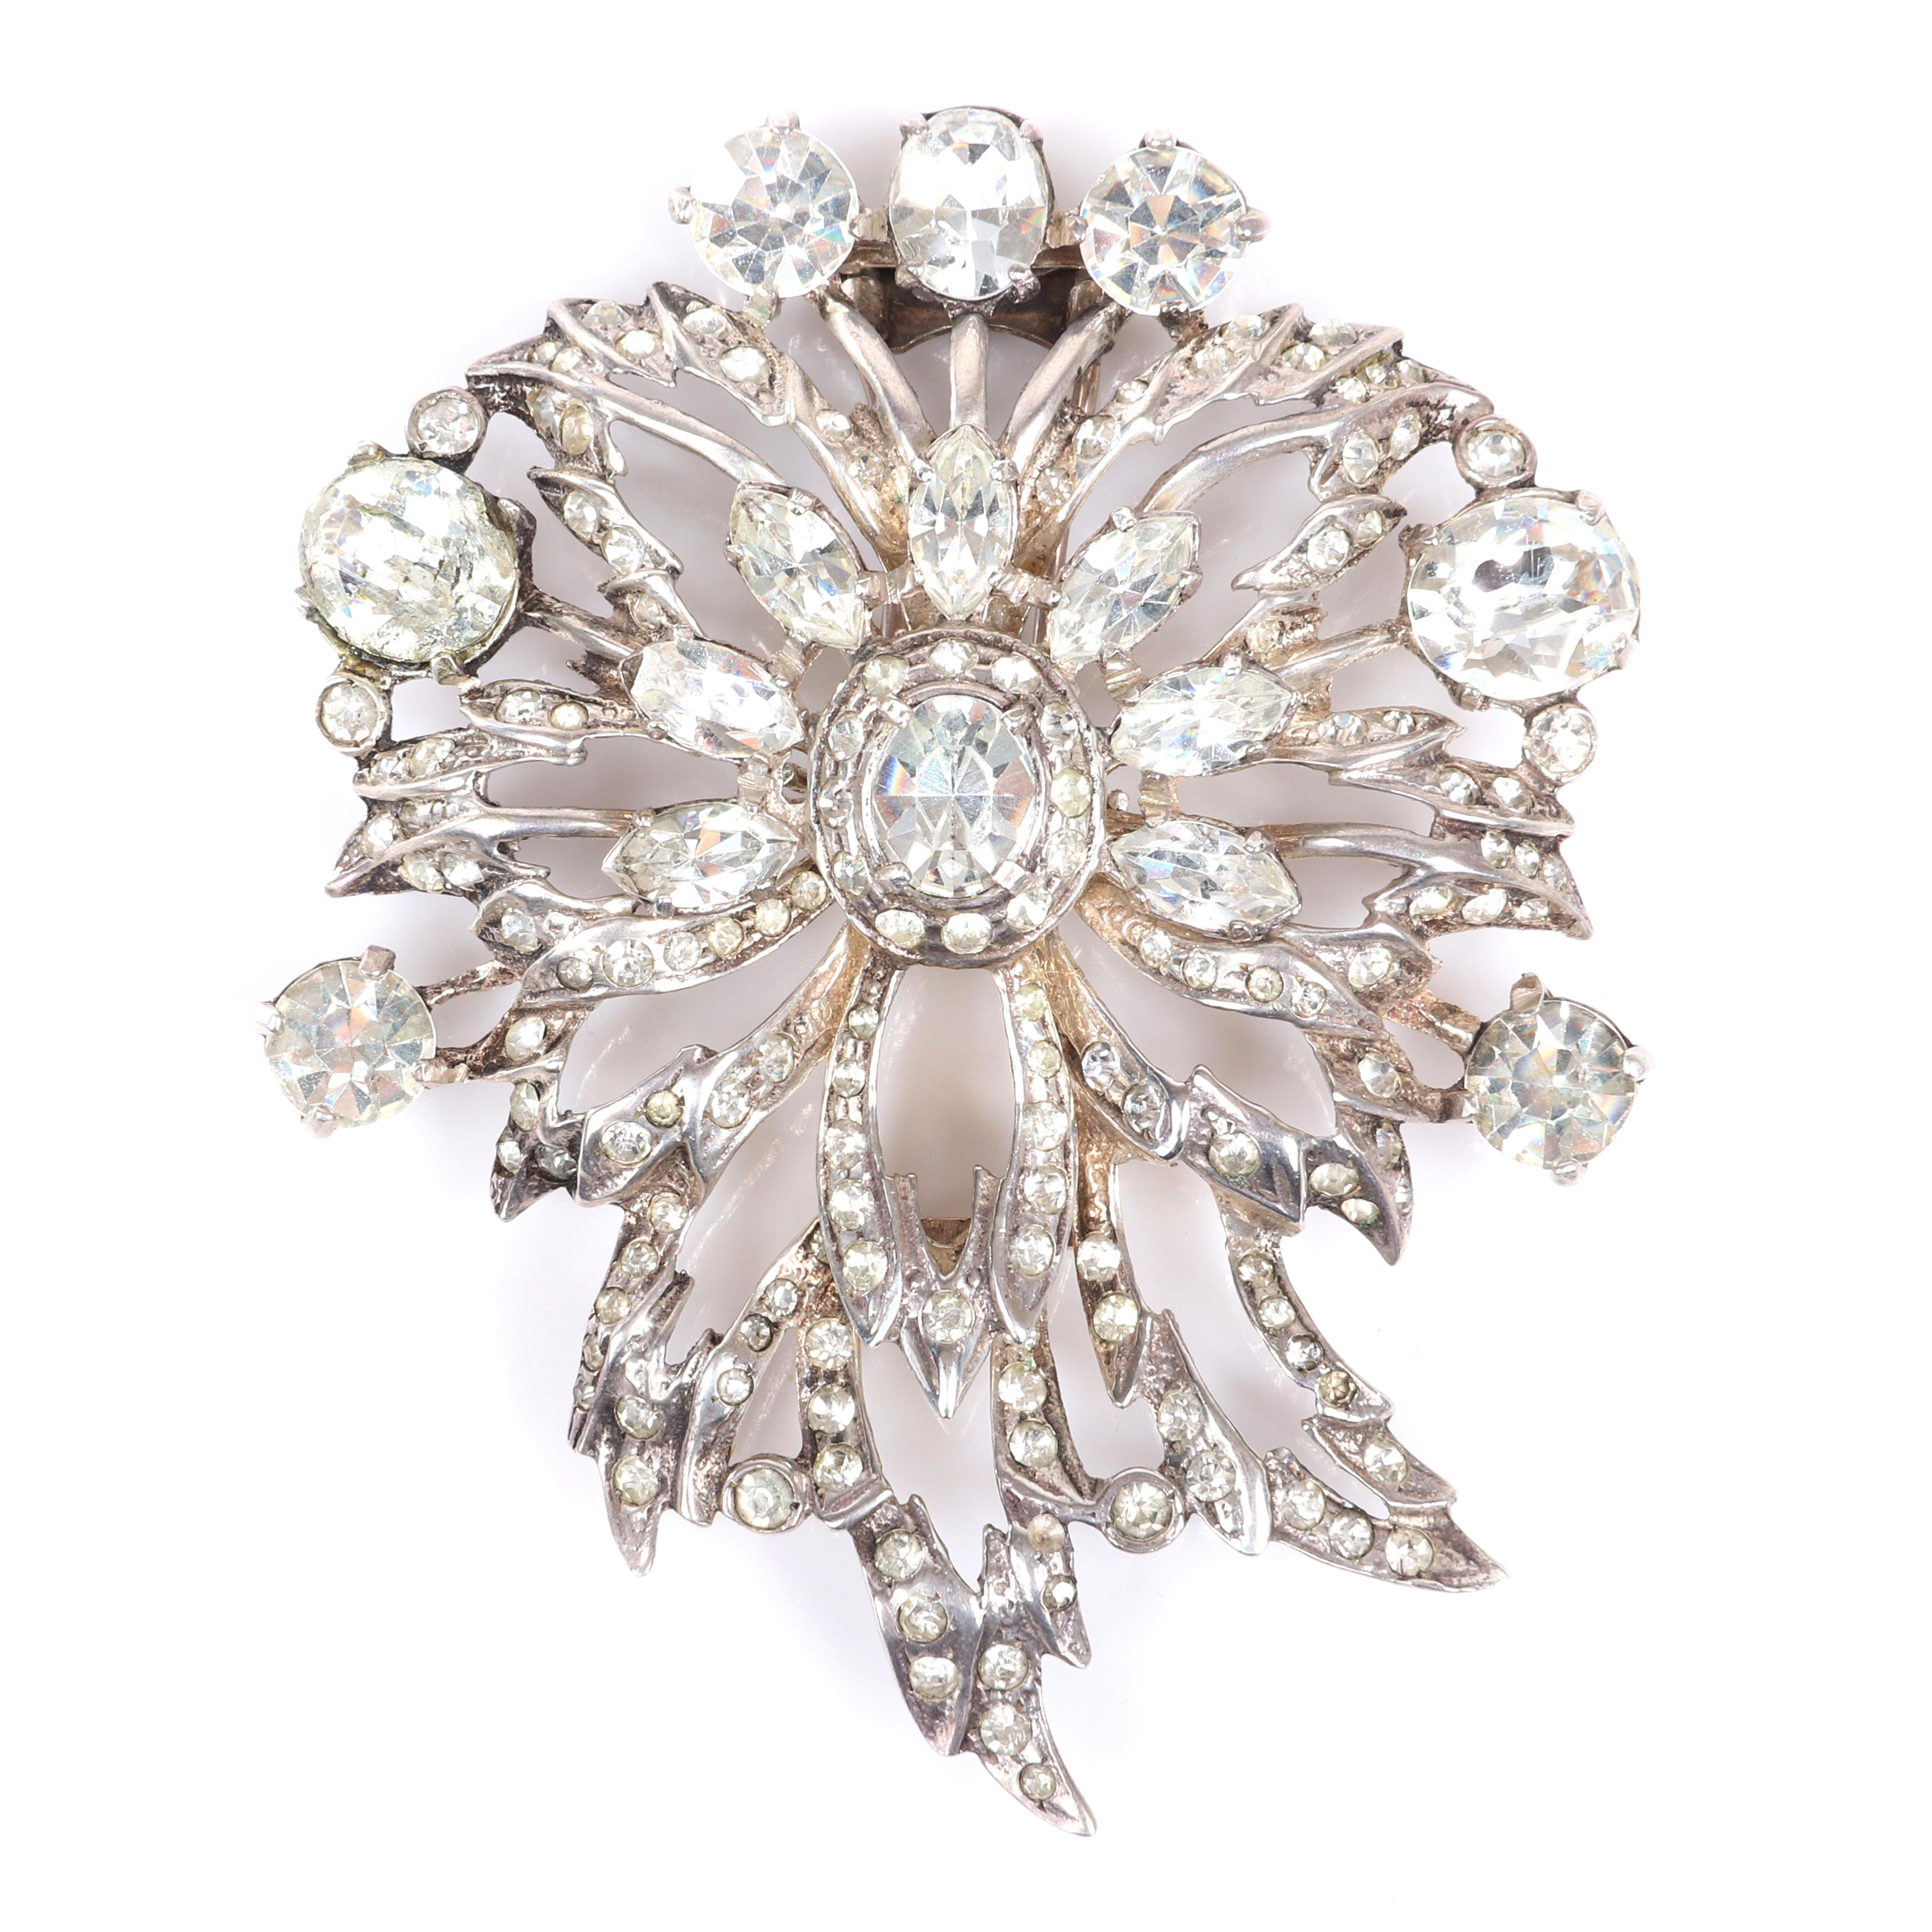 """Eisenberg Original large abstract diamante and openwork fur clip with large central oval crystal, pave, marquise and round faceted rhinestones, mid-1940s. 3"""" x 2 1/4"""""""